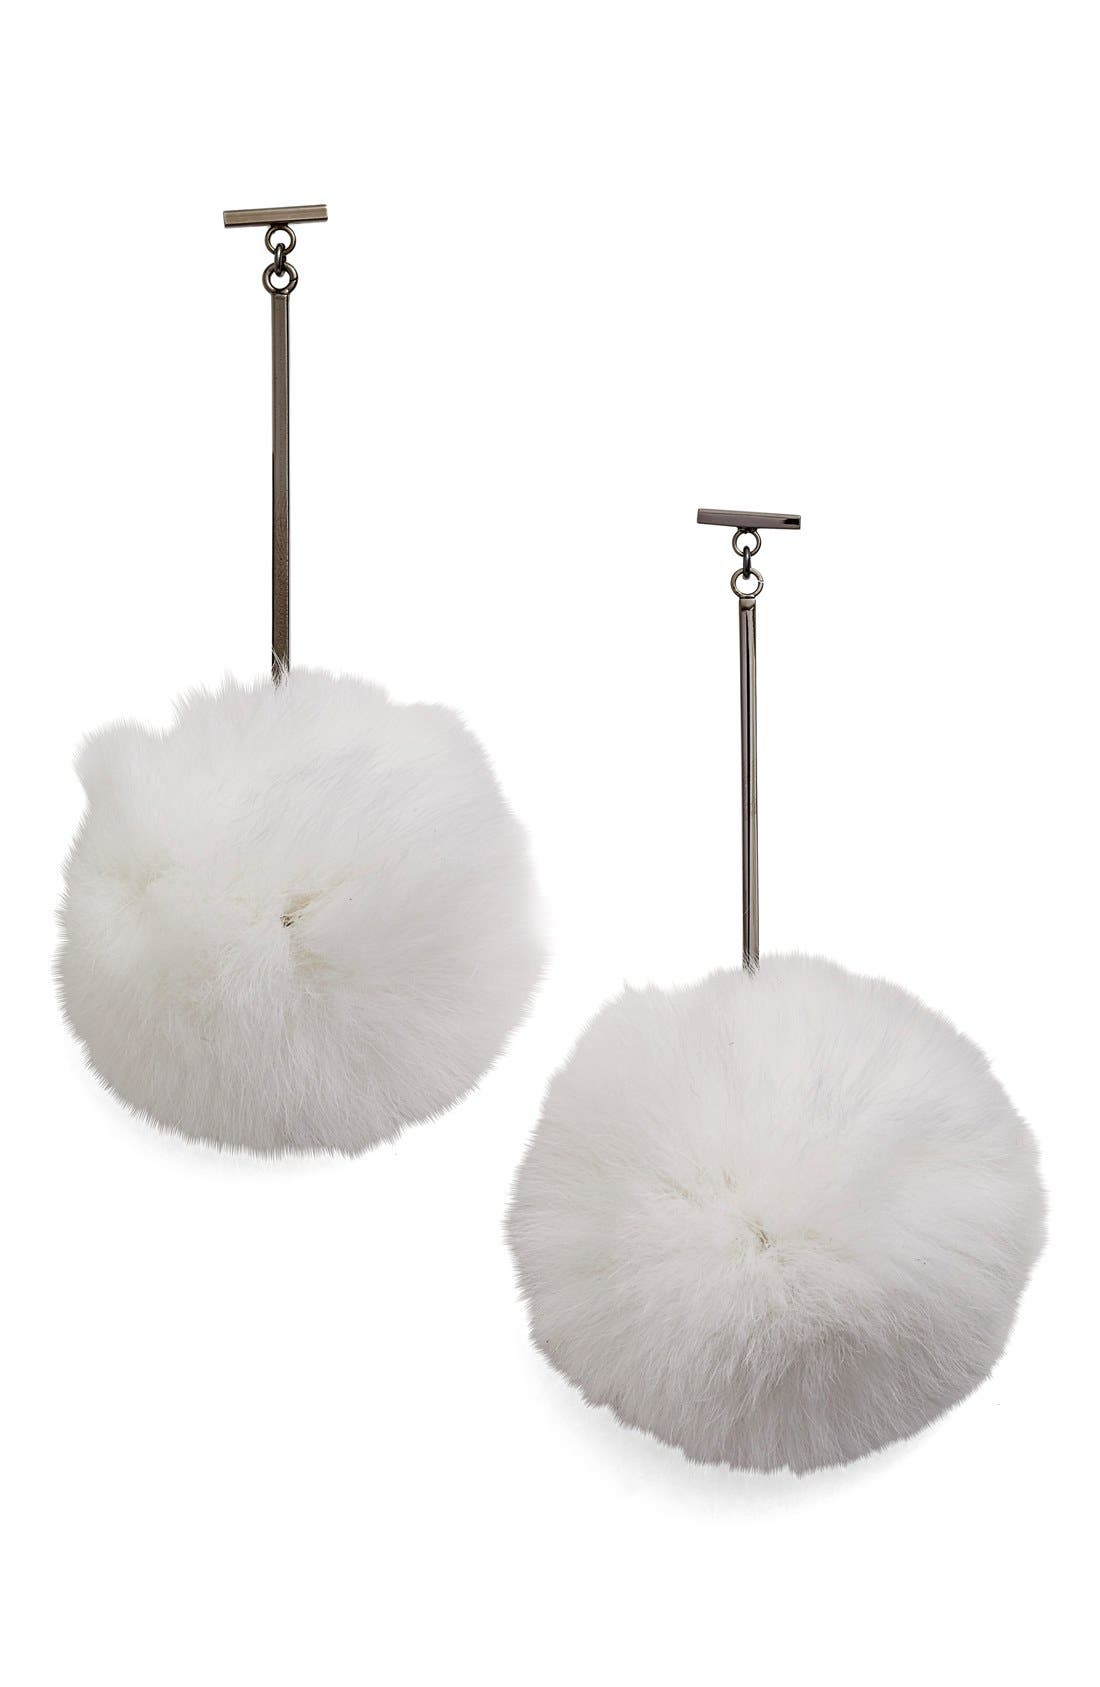 Main Image - Tuleste 'Pom Pom' Genuine Rabbit Fur Drop Earrings